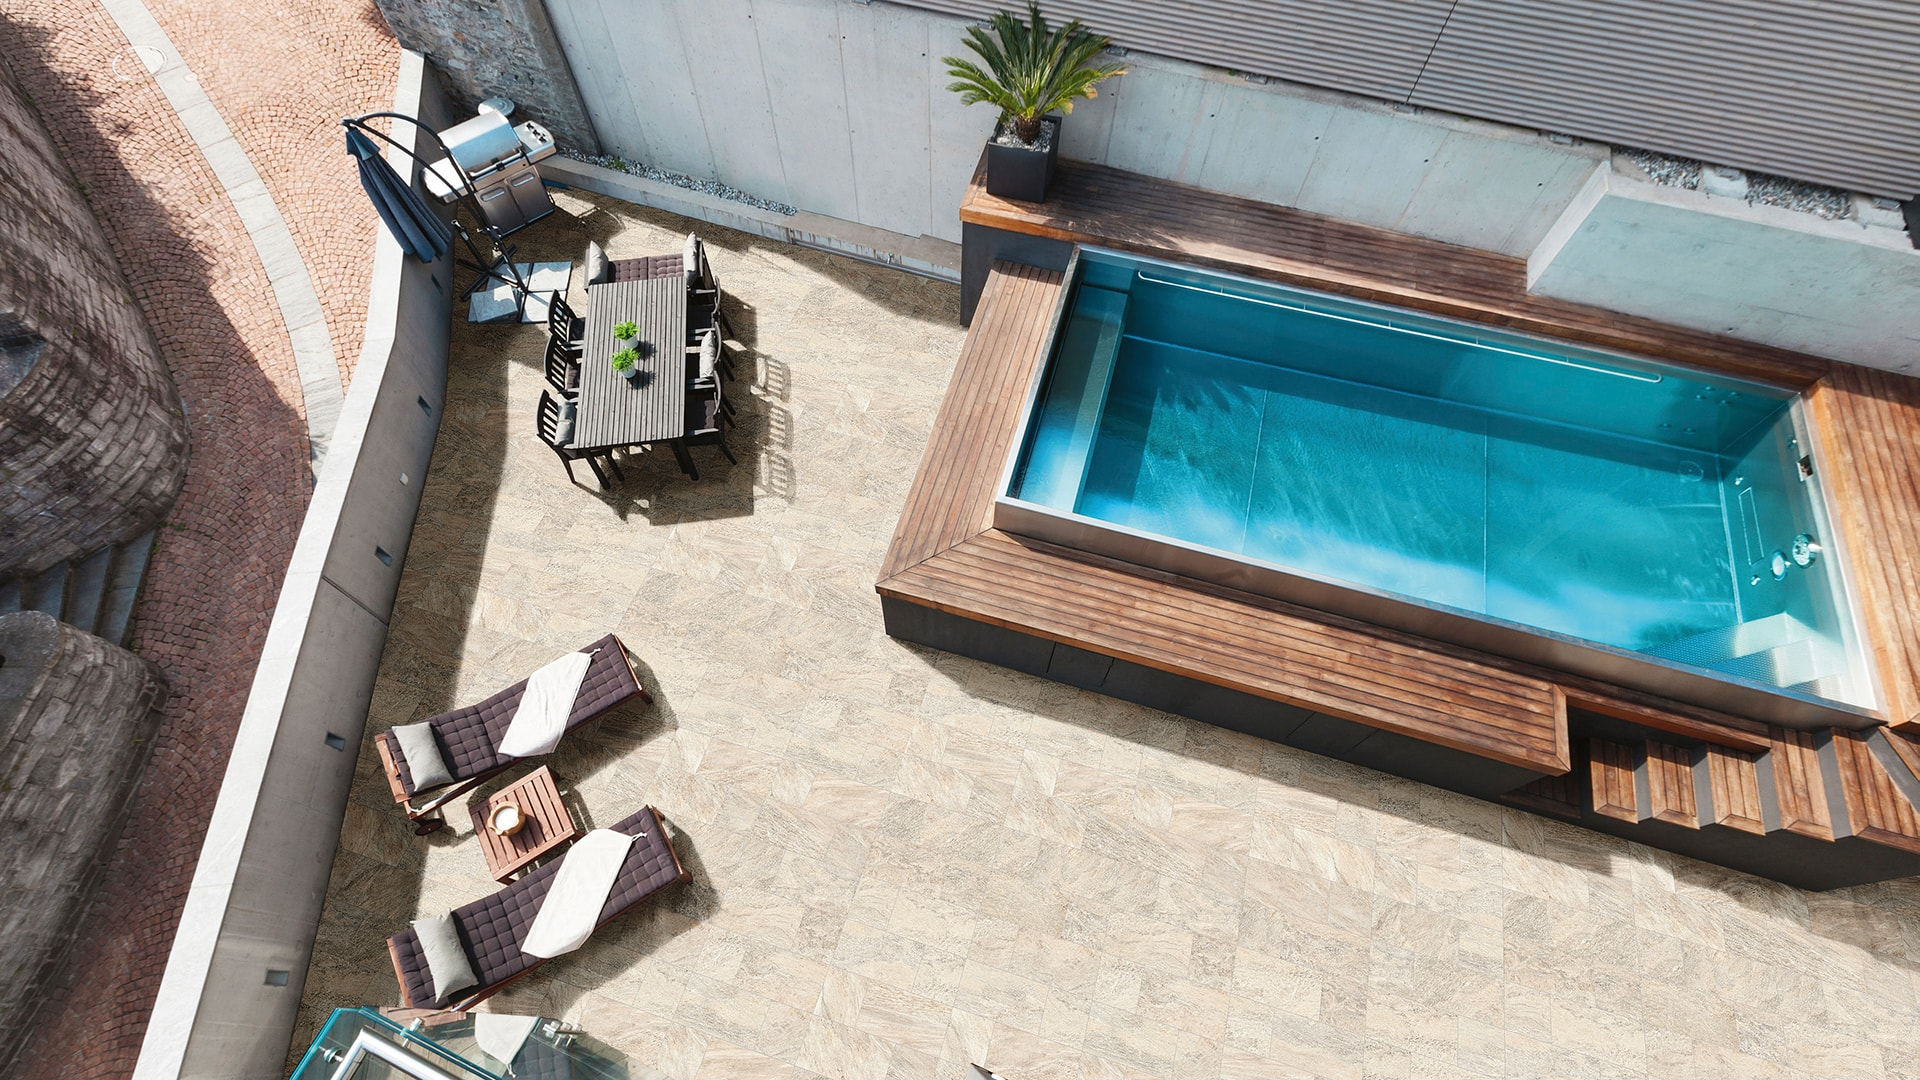 Dosem ceramiche emotional surfaces for contemporary projects